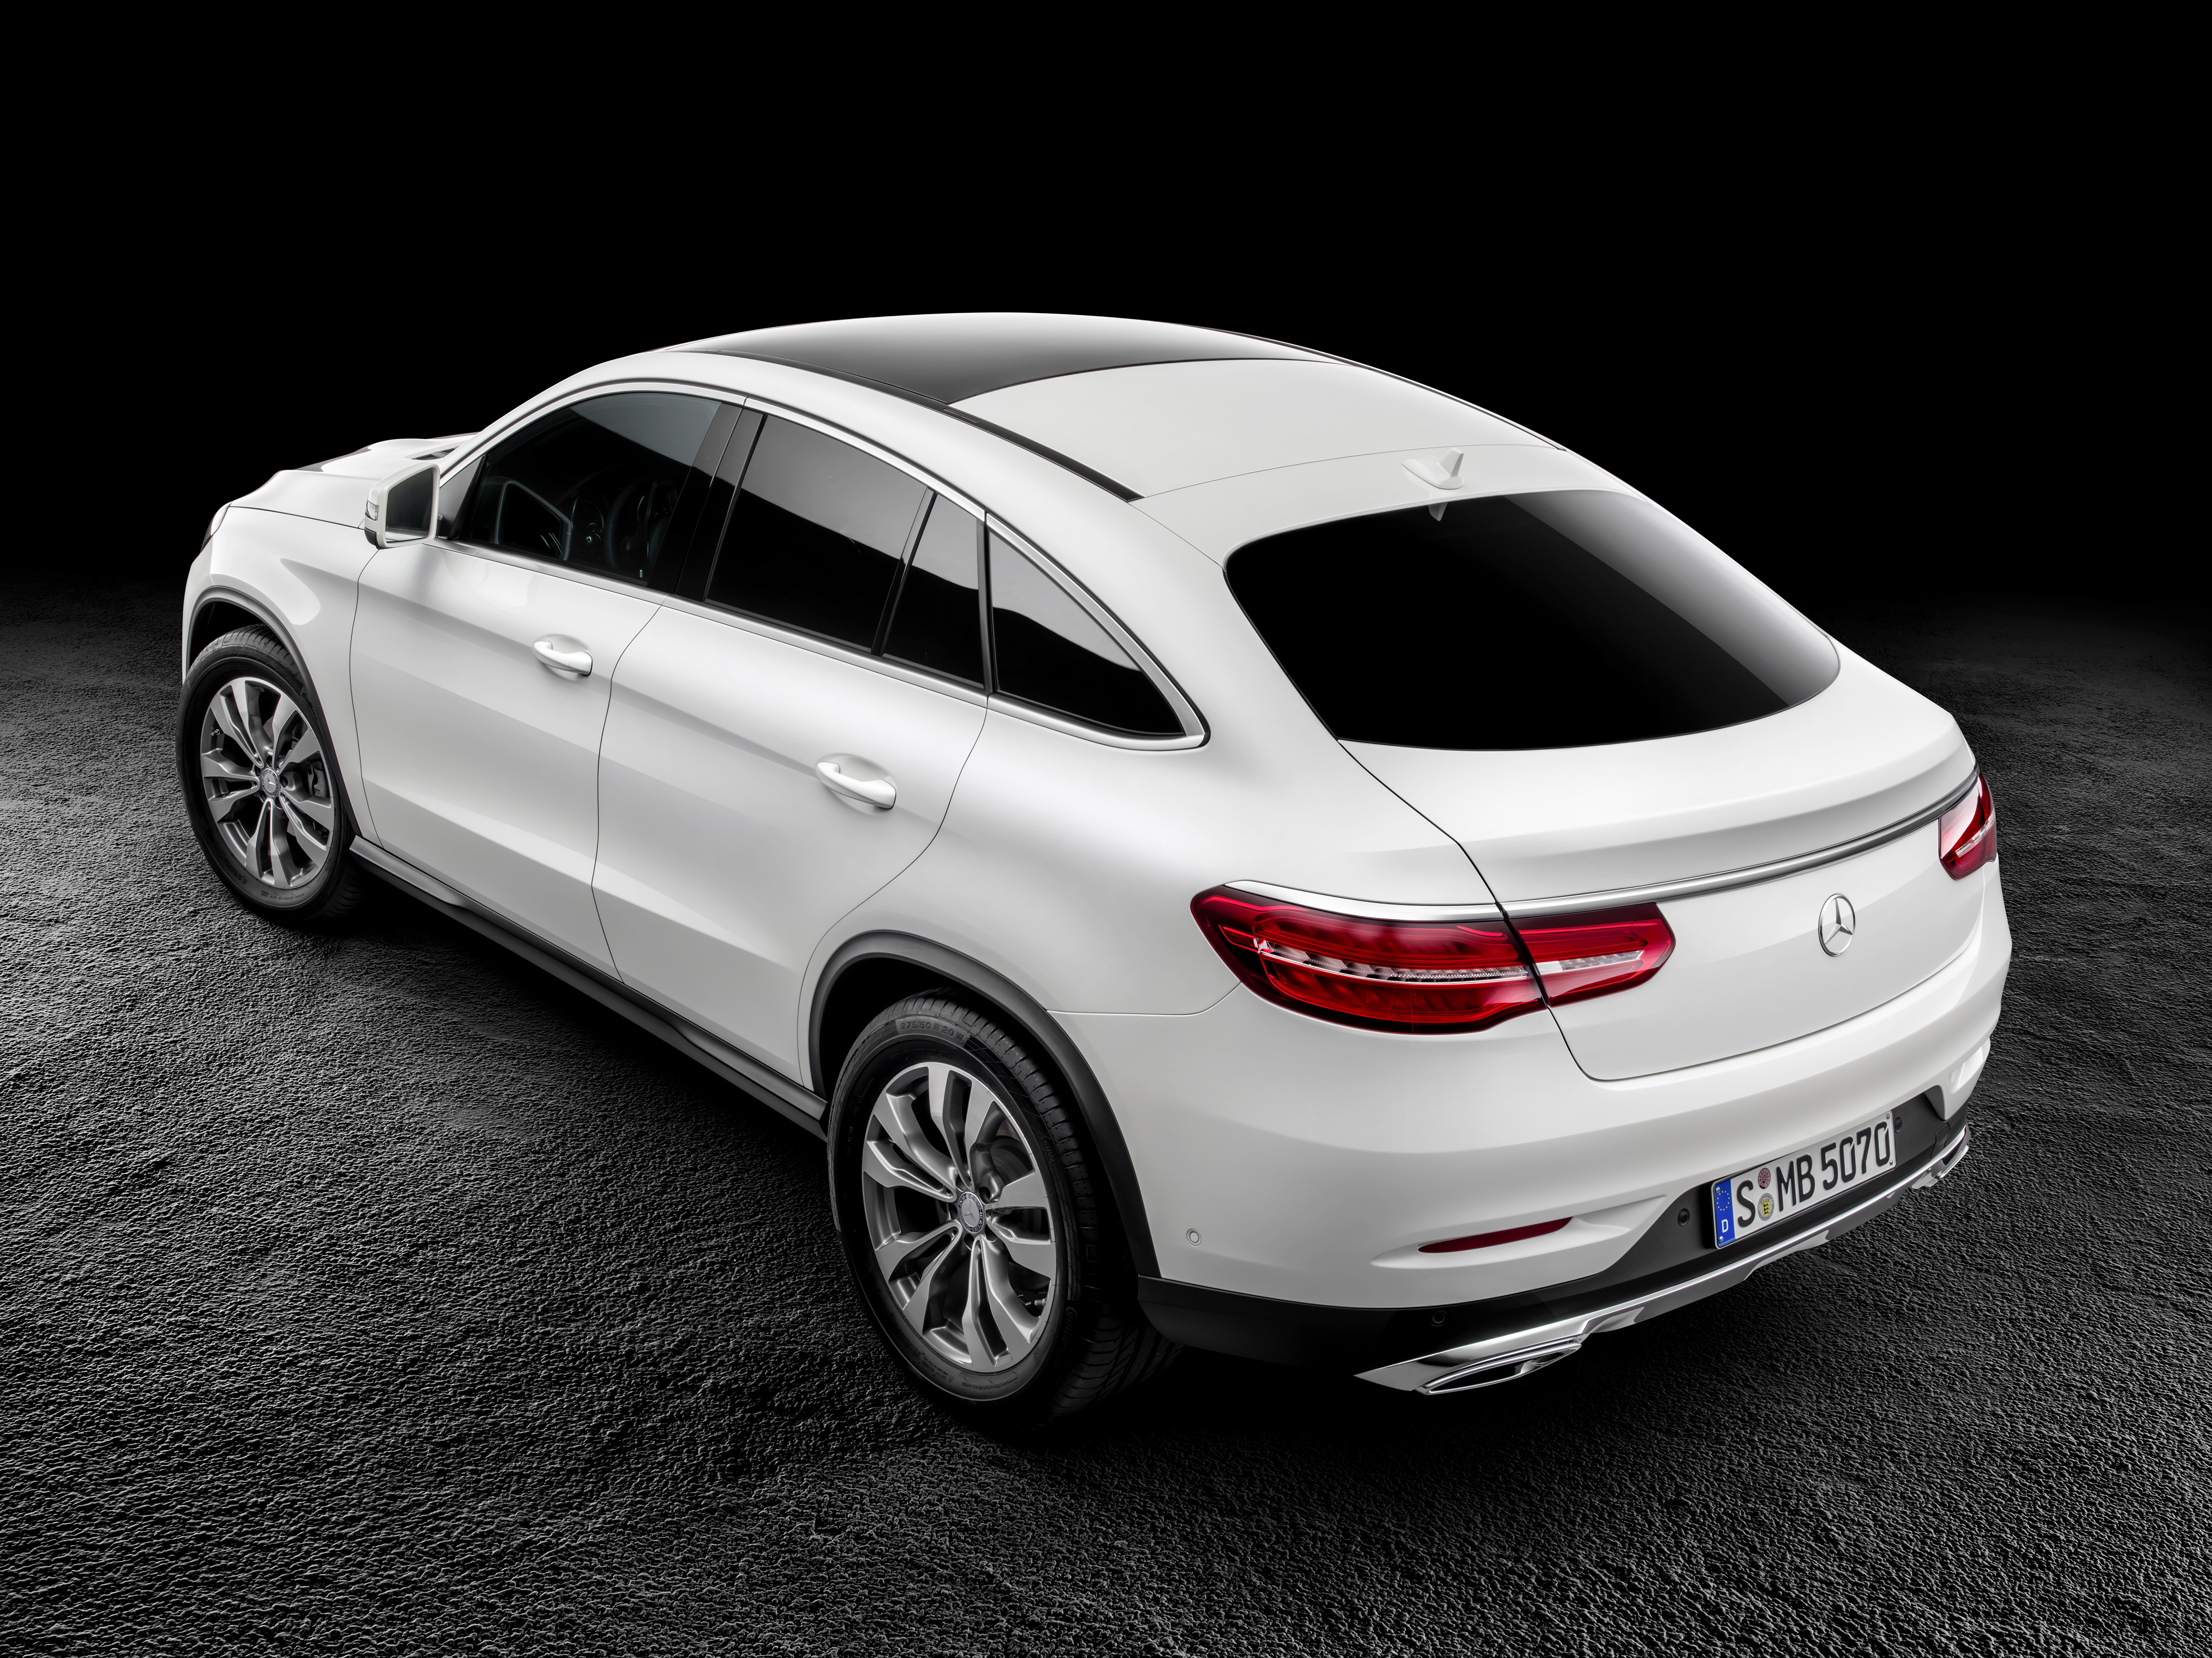 Mercedes Benz GLE Coupe Wallpapers